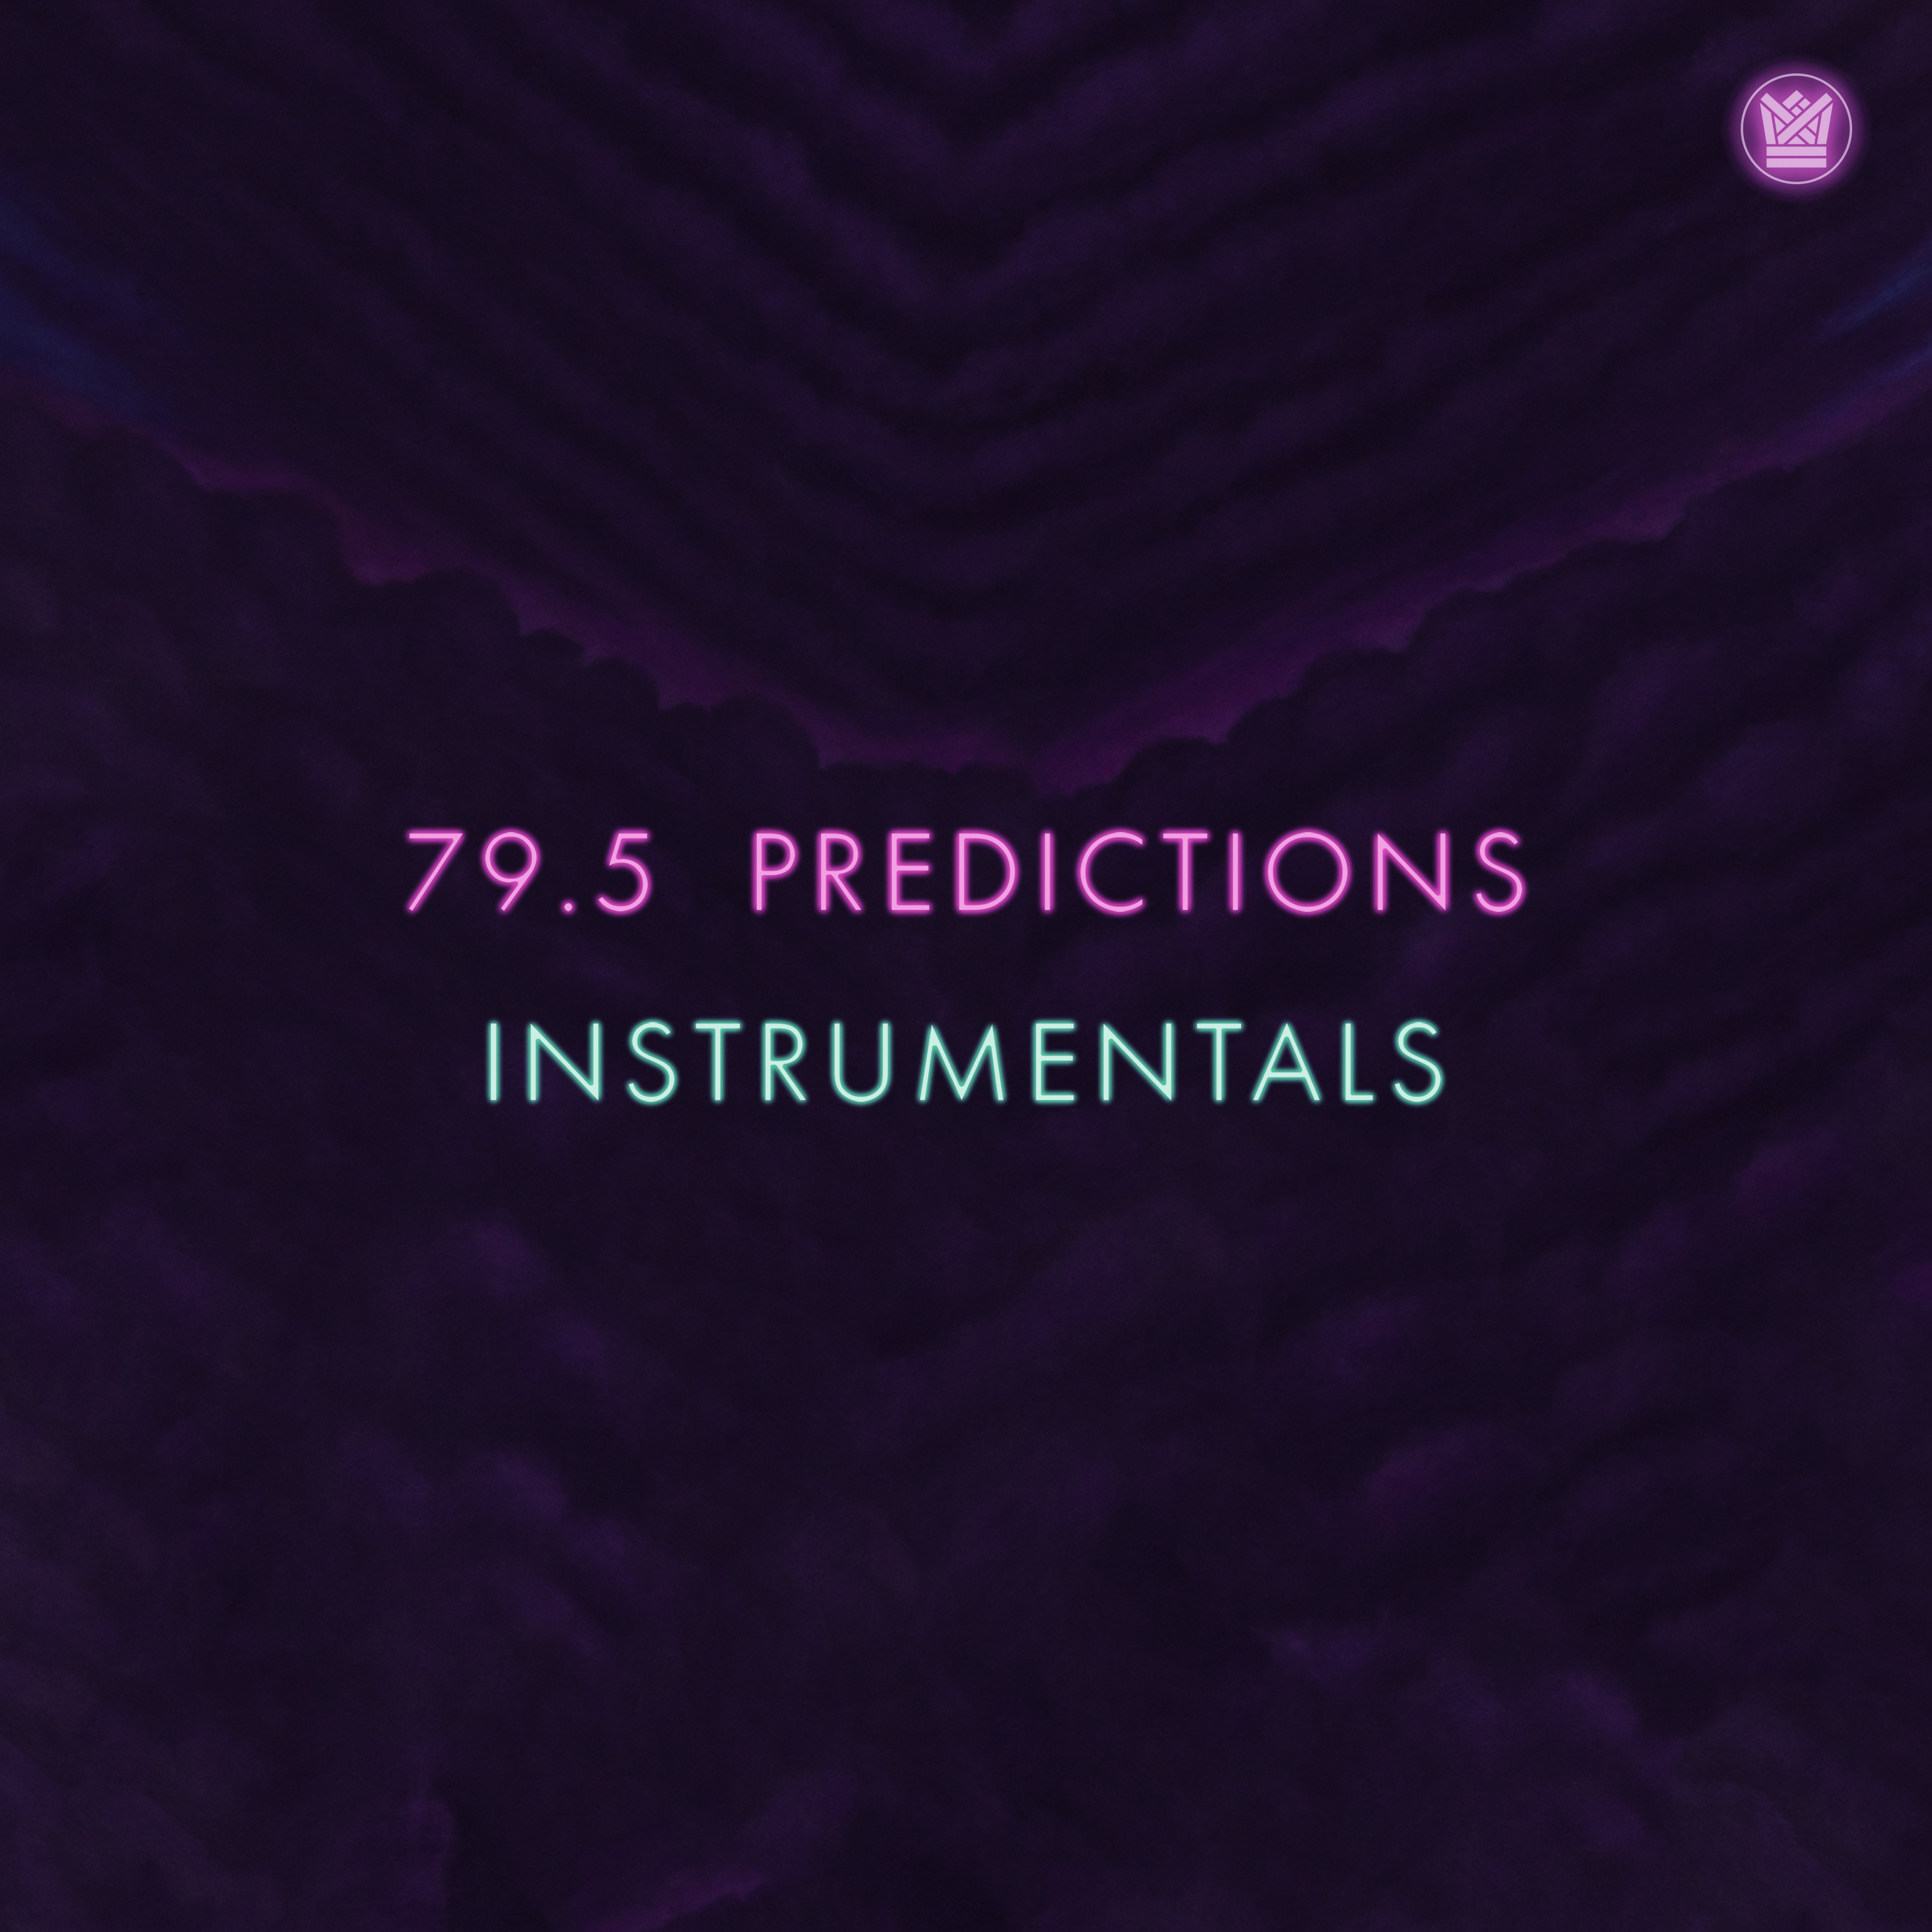 79.5 predictions instrumentals big crown records